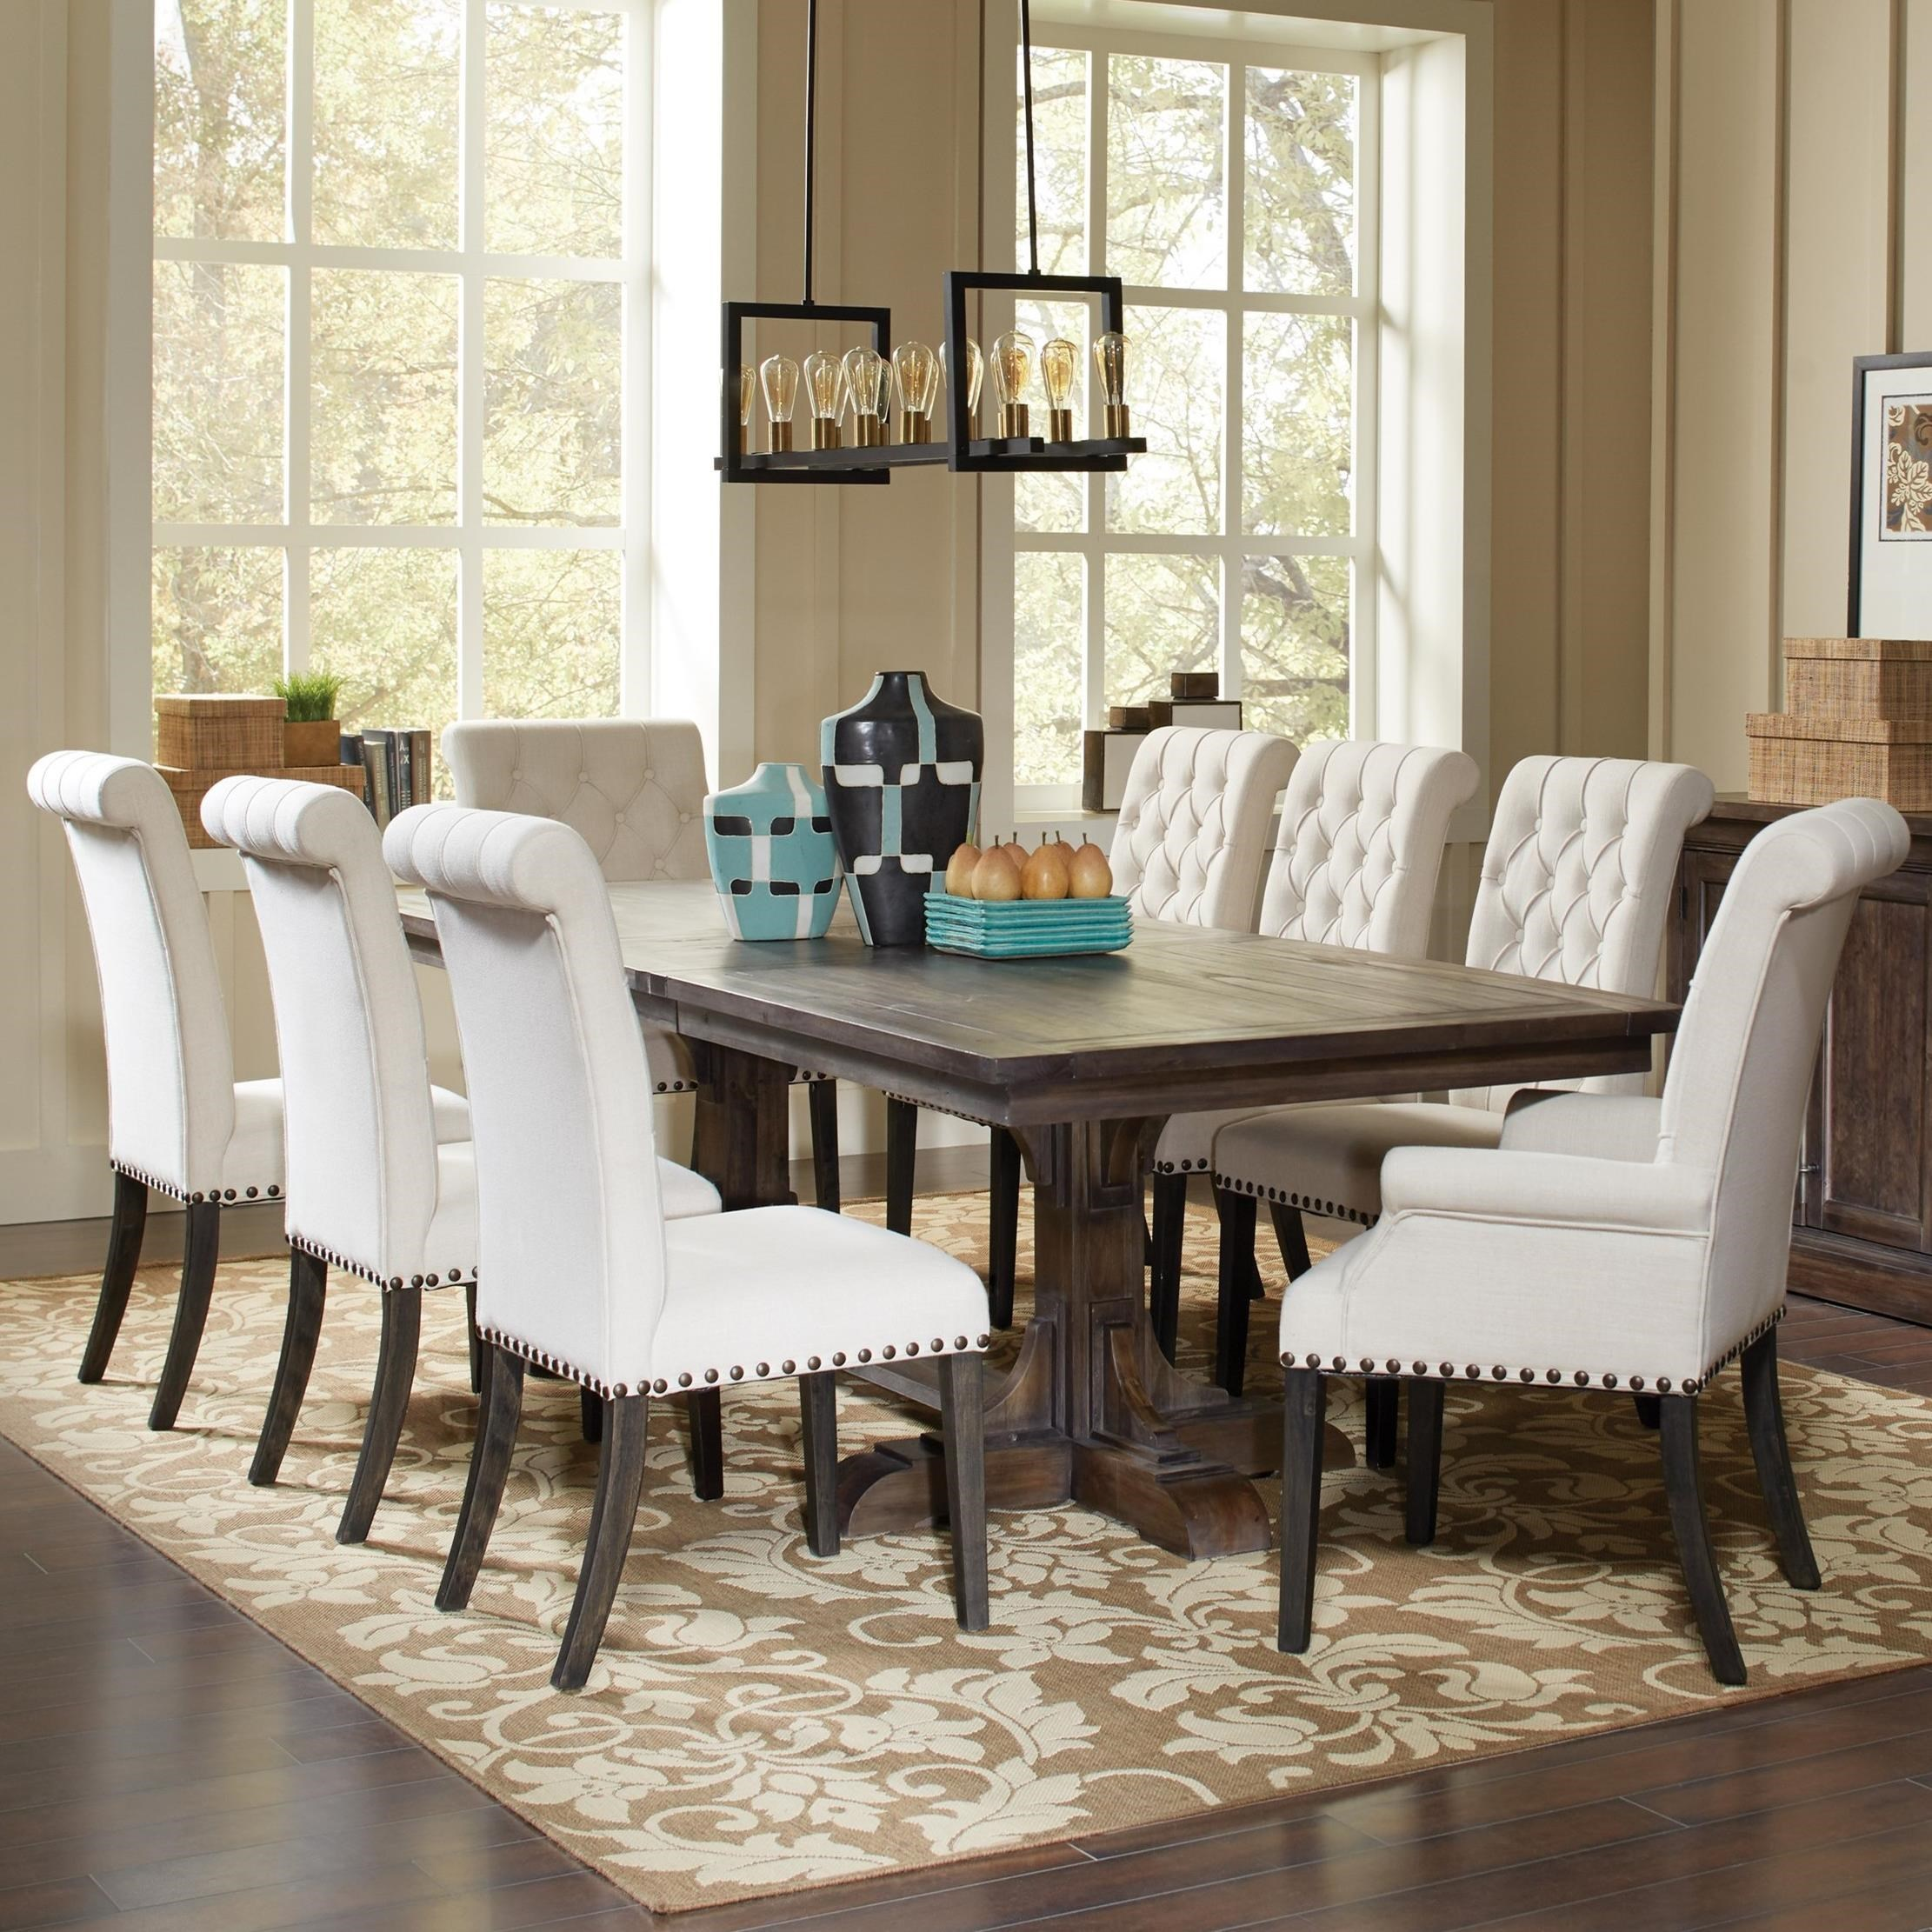 dining room table with upholstered chairs coaster weber traditional dining table and cream upholstered chair set XDJWYZK